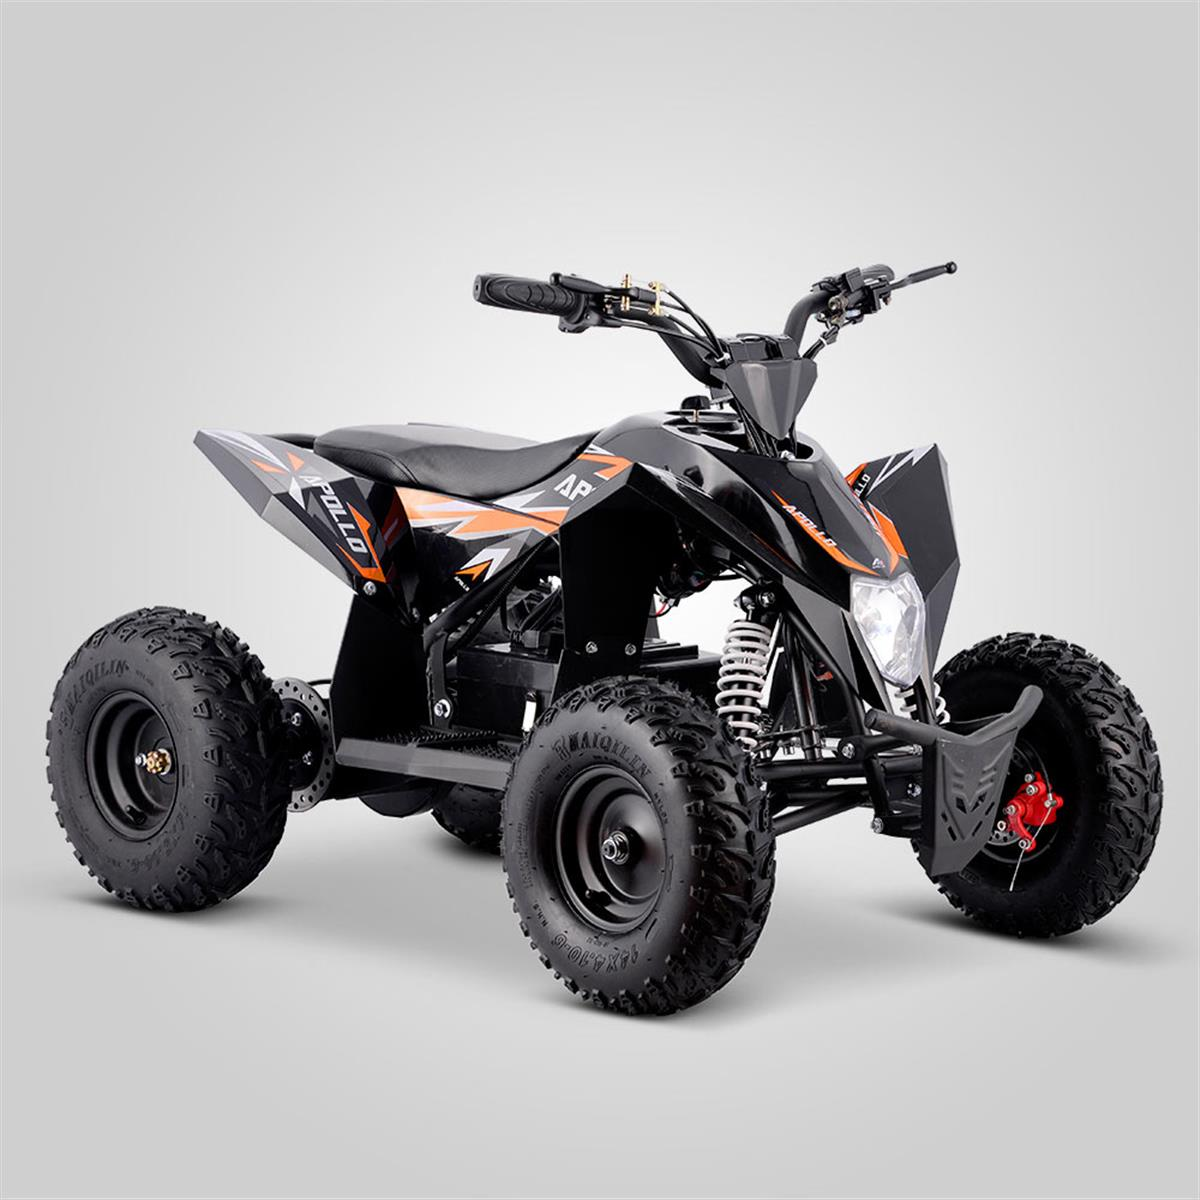 quad lectrique enfant apollo 1000w fox smallmx dirt bike pit bike quads minimoto. Black Bedroom Furniture Sets. Home Design Ideas